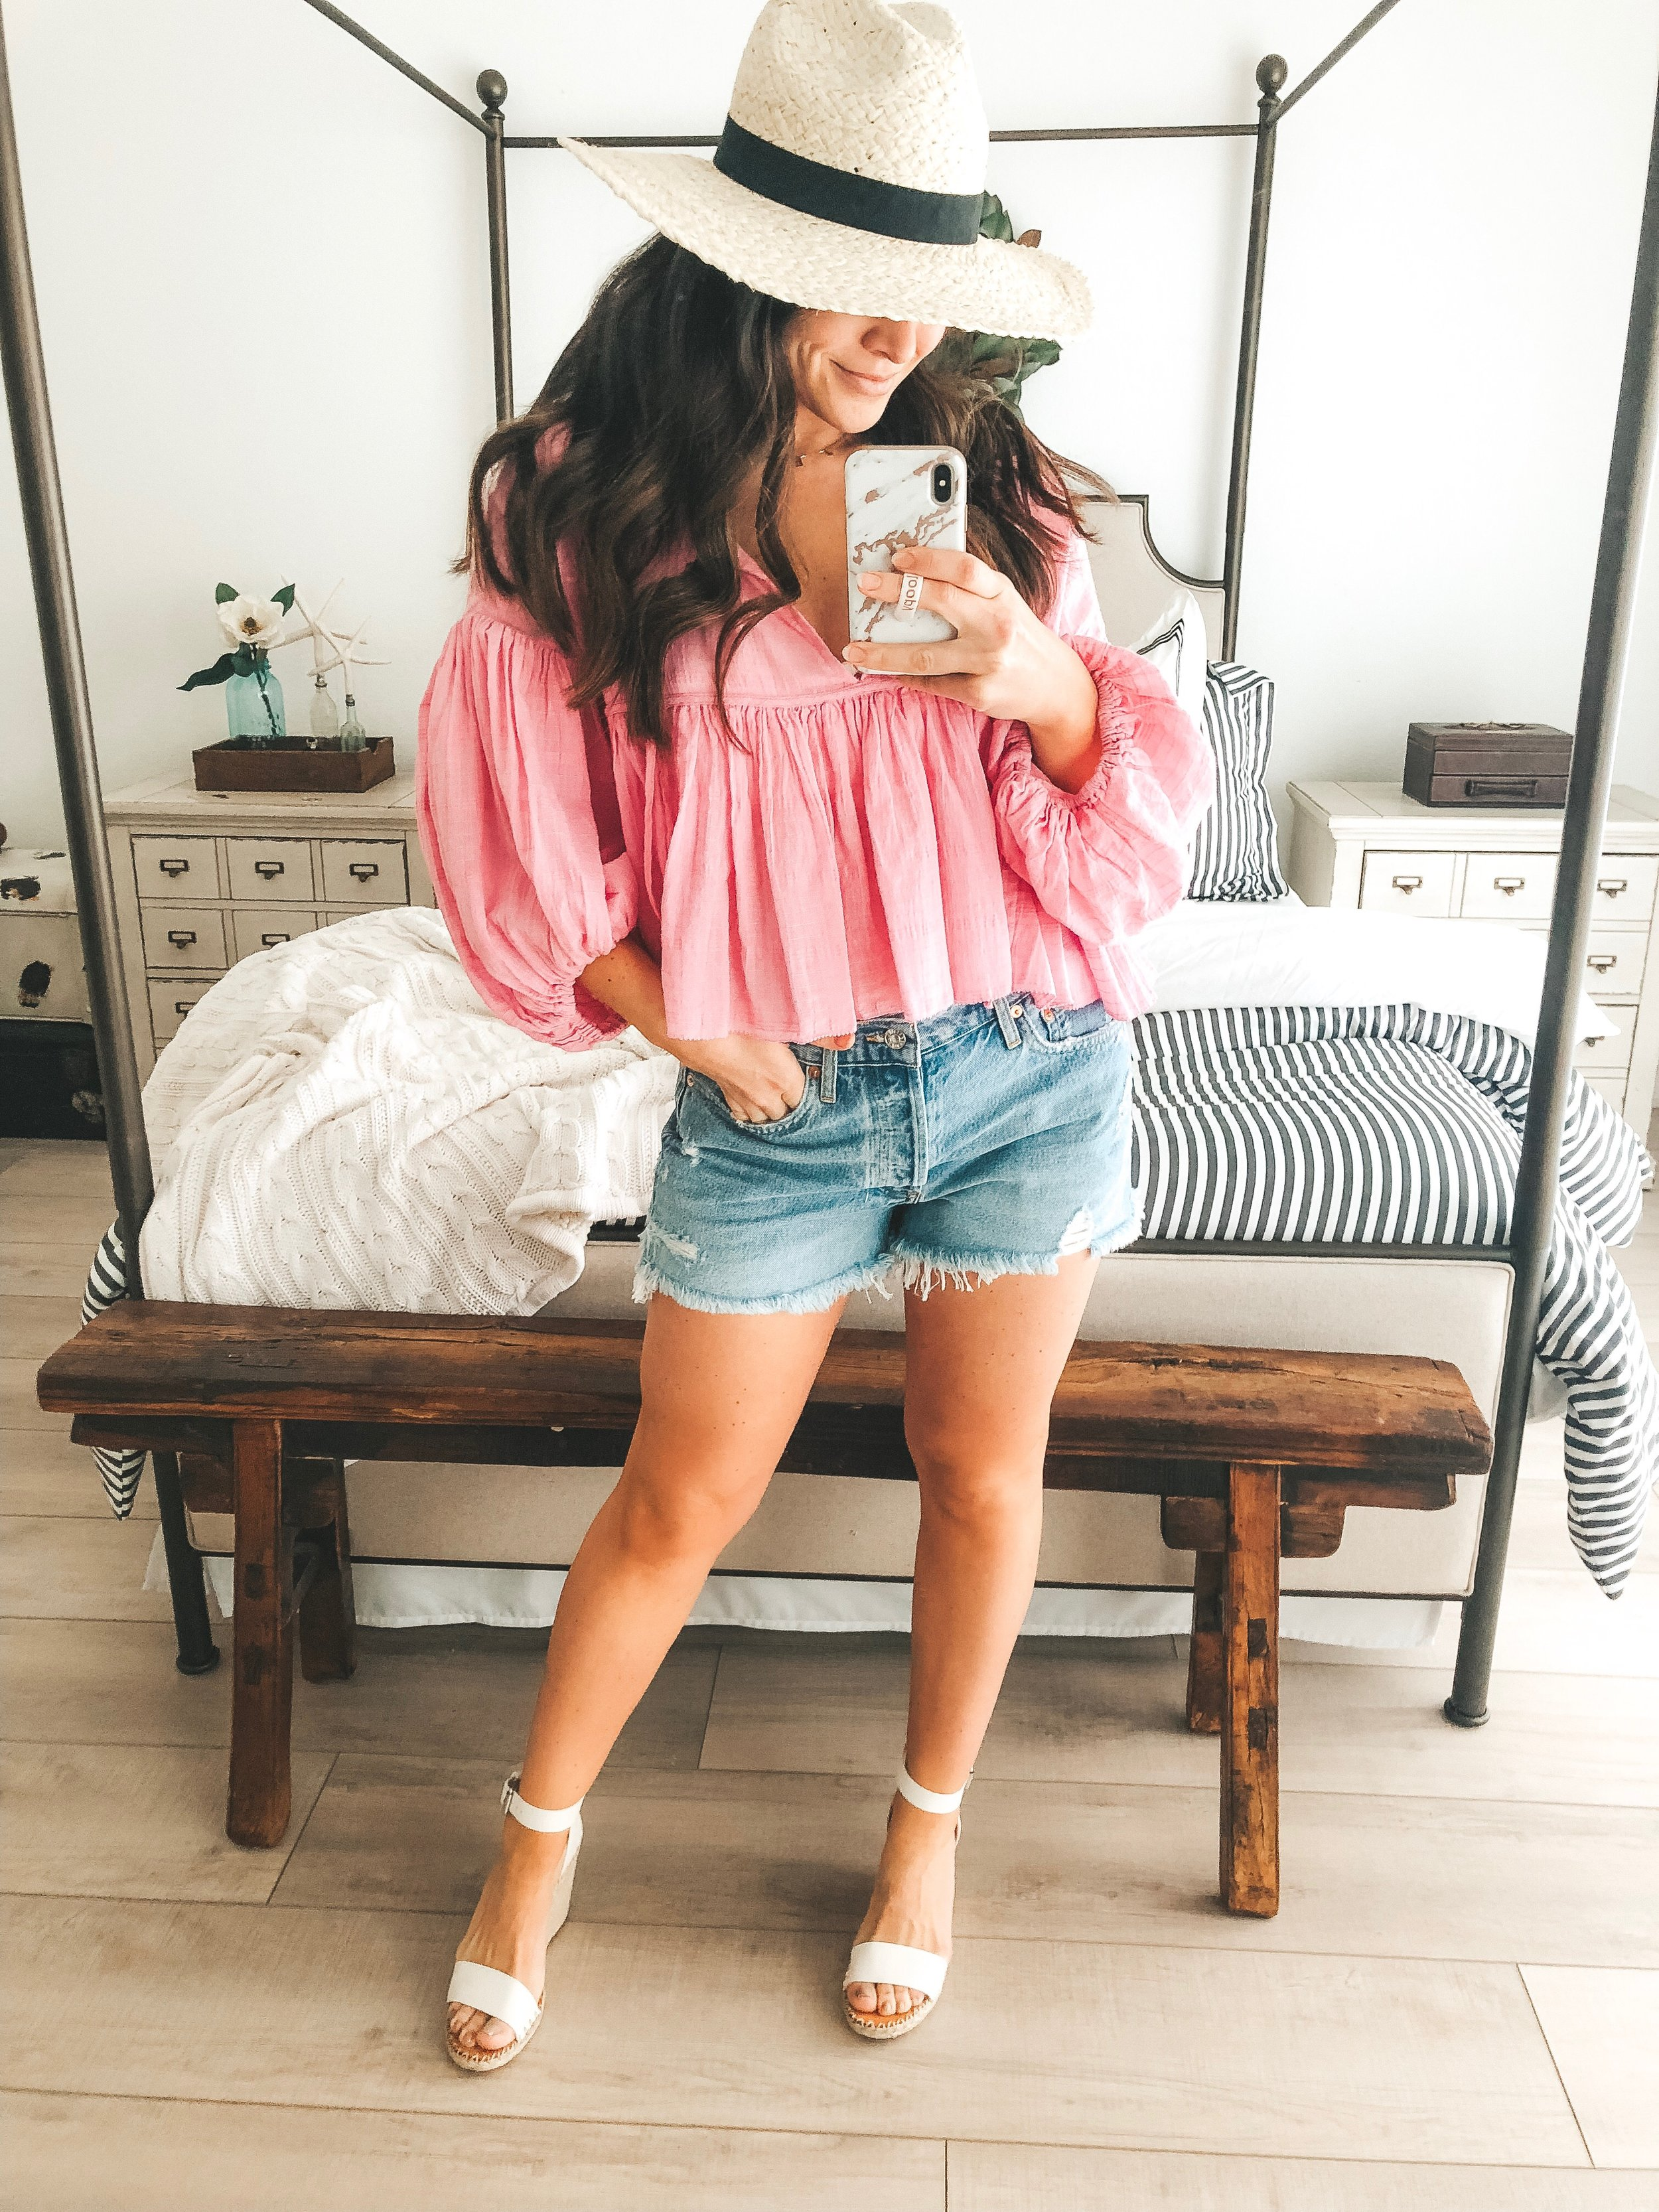 Free People Beaumont Mews Top, Free People Adella bralette, AGOLDE Parker jean shorts, and Dolce Vita Noor wedge sandals.